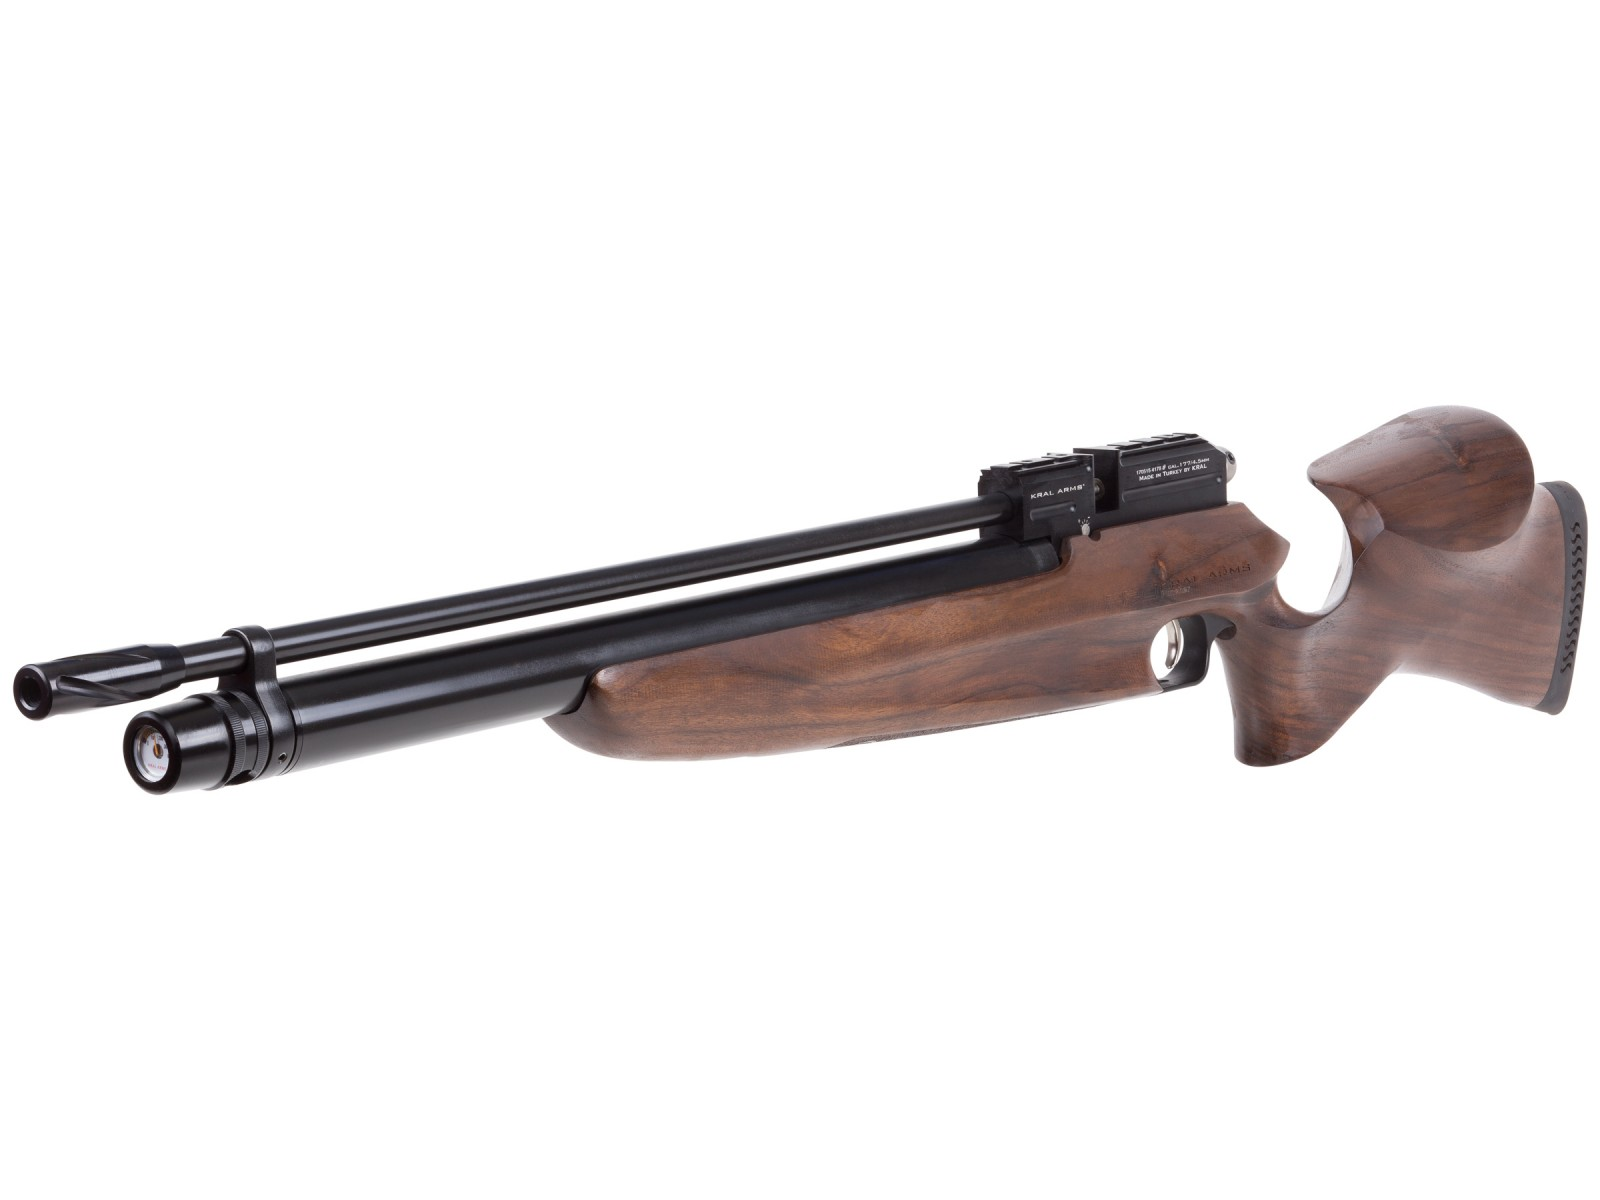 Kral Arms Puncher Pro PCP Air Rifle